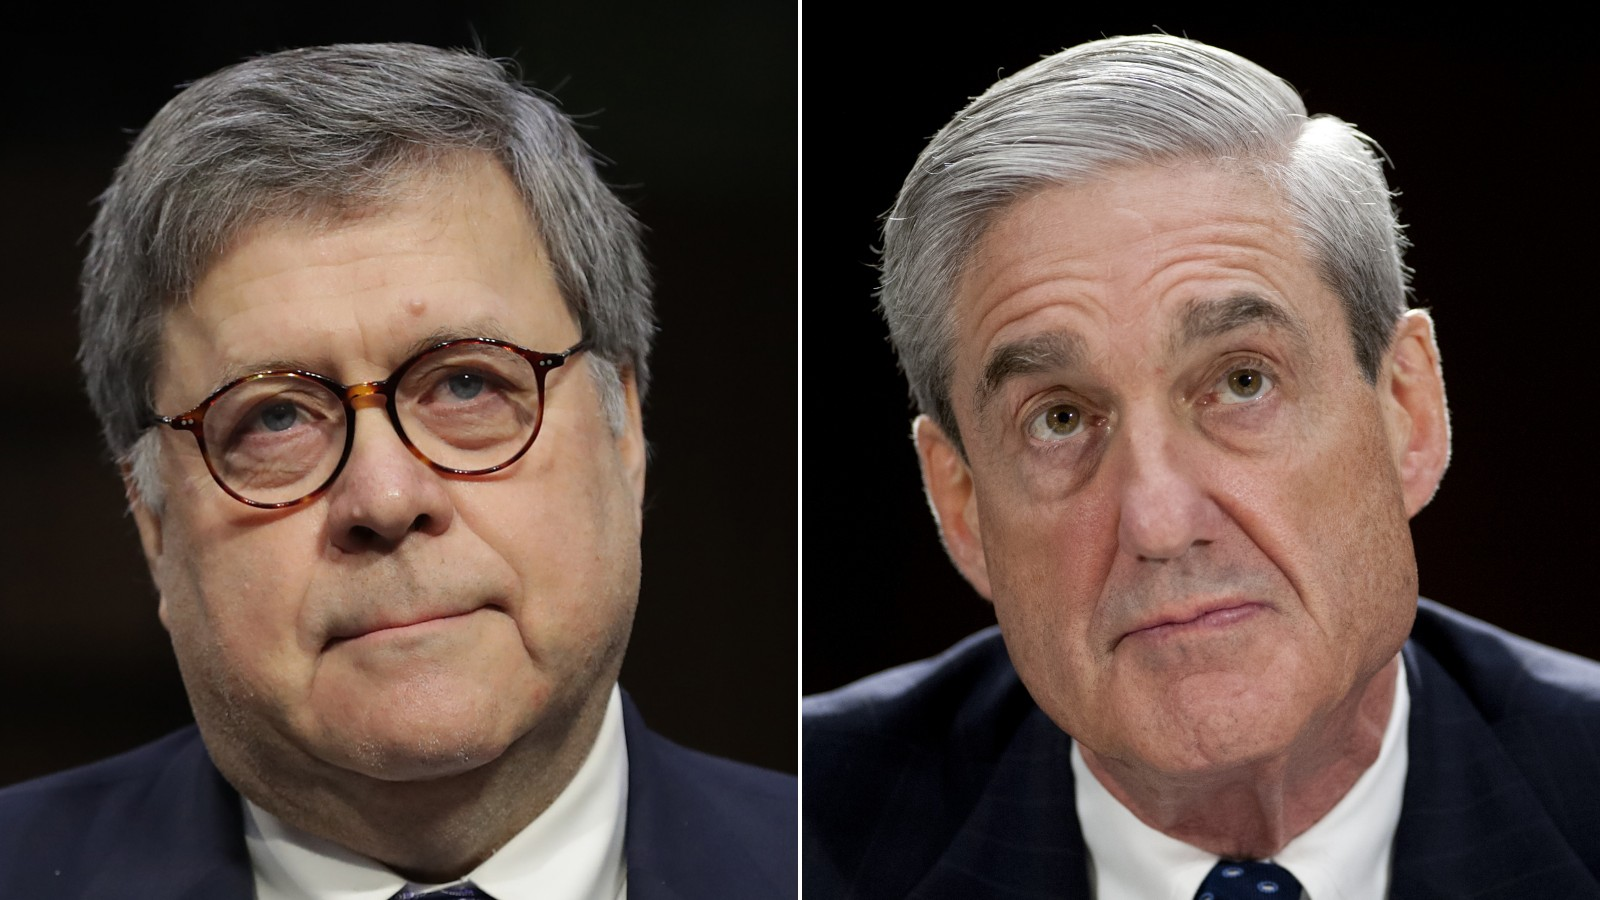 Attorney General William Barr and former Special Counsel Robert Mueller are shown in file images. (AFP & Getty Images)